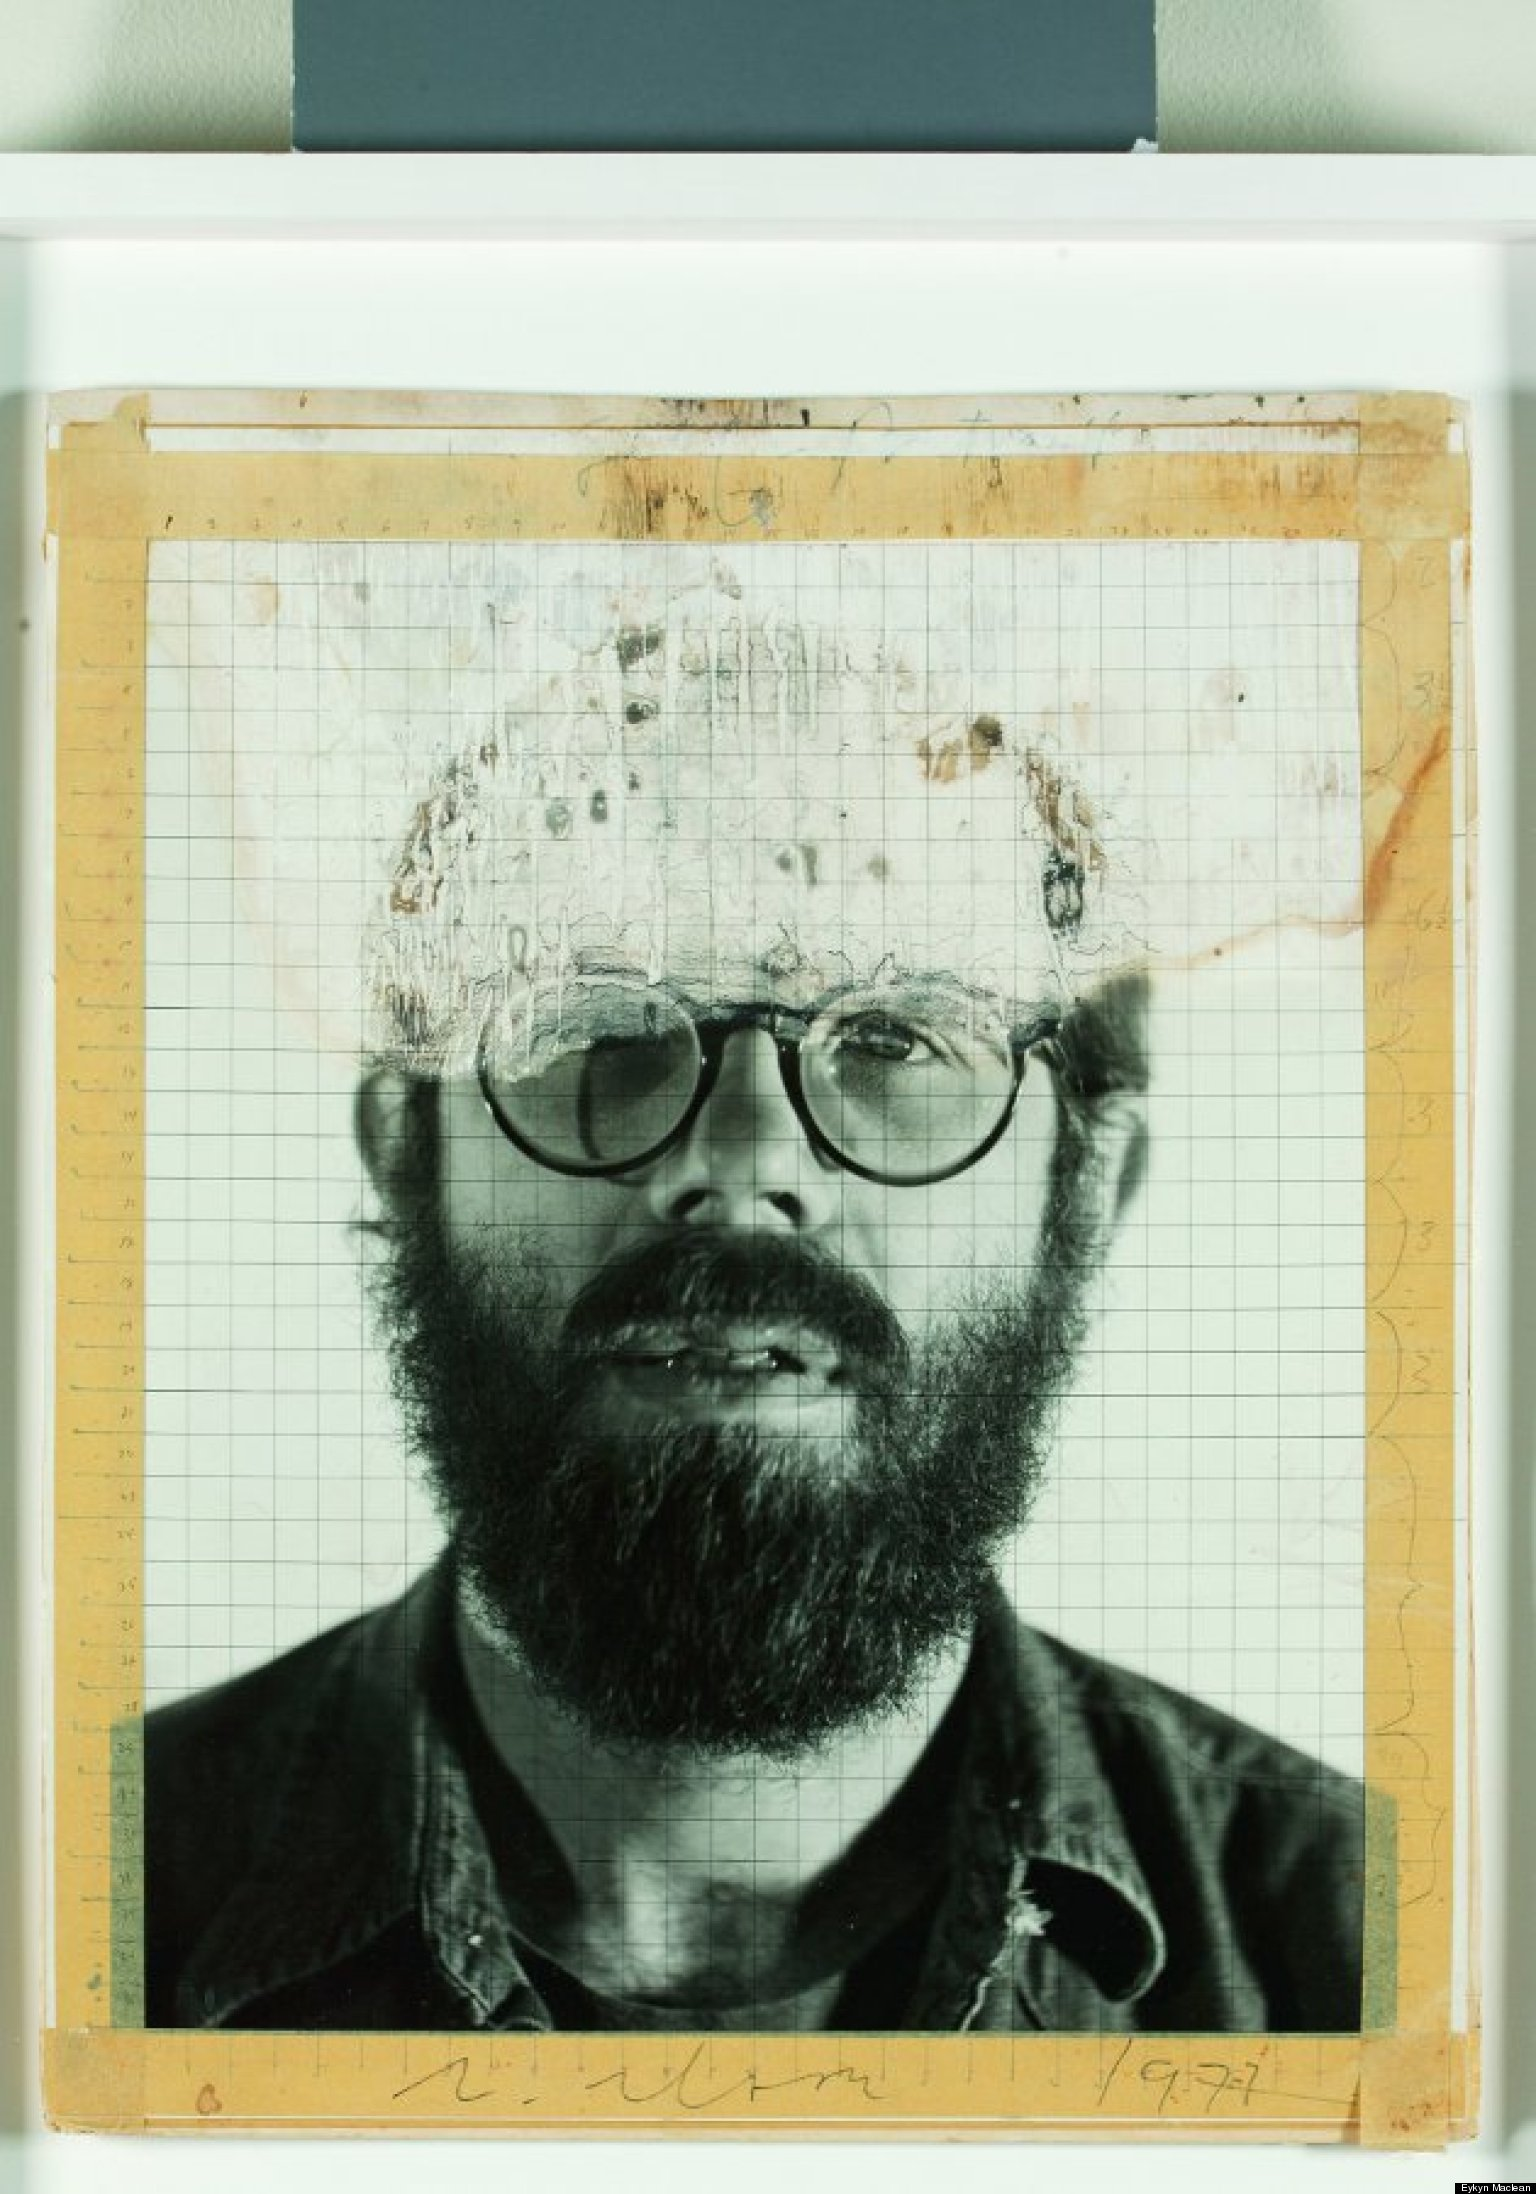 A Close Up Of A 14 Year Old Boy Covered In Snow Stock: Chuck Close's Photo Maquettes Reveal Origins Of